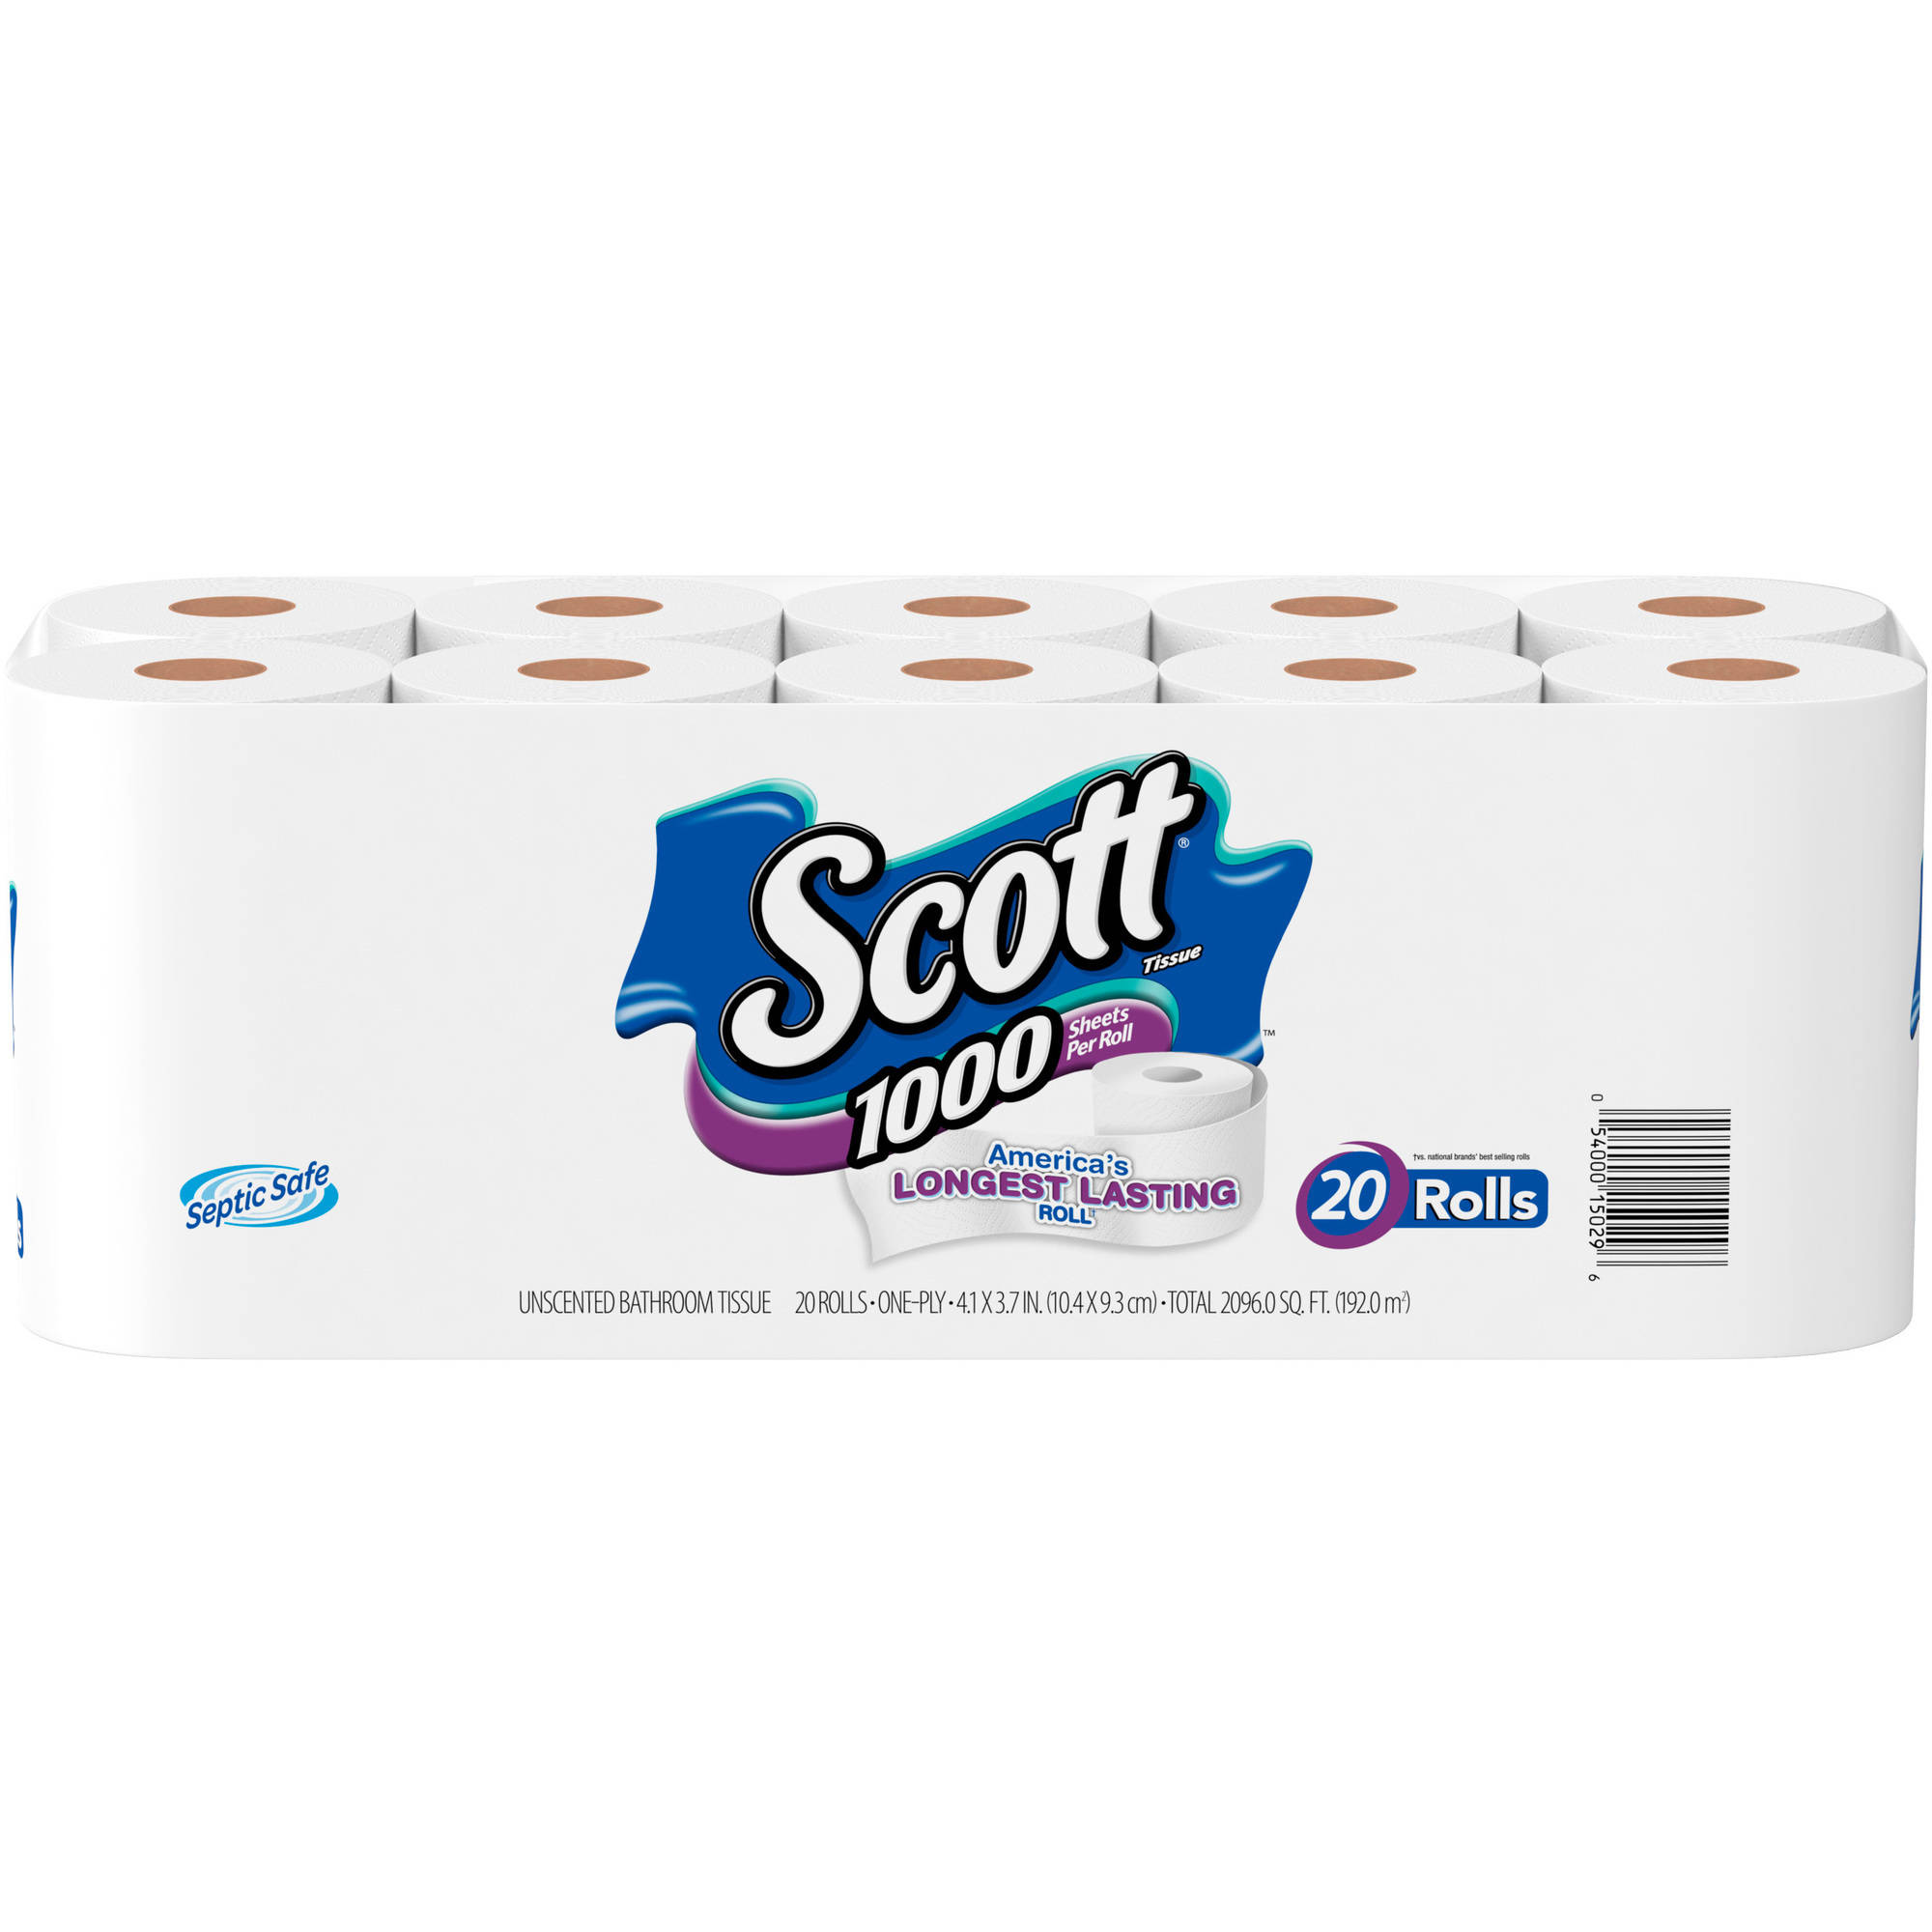 Scott One-Ply Bathroom Tissue, 20 count - Walmart.com